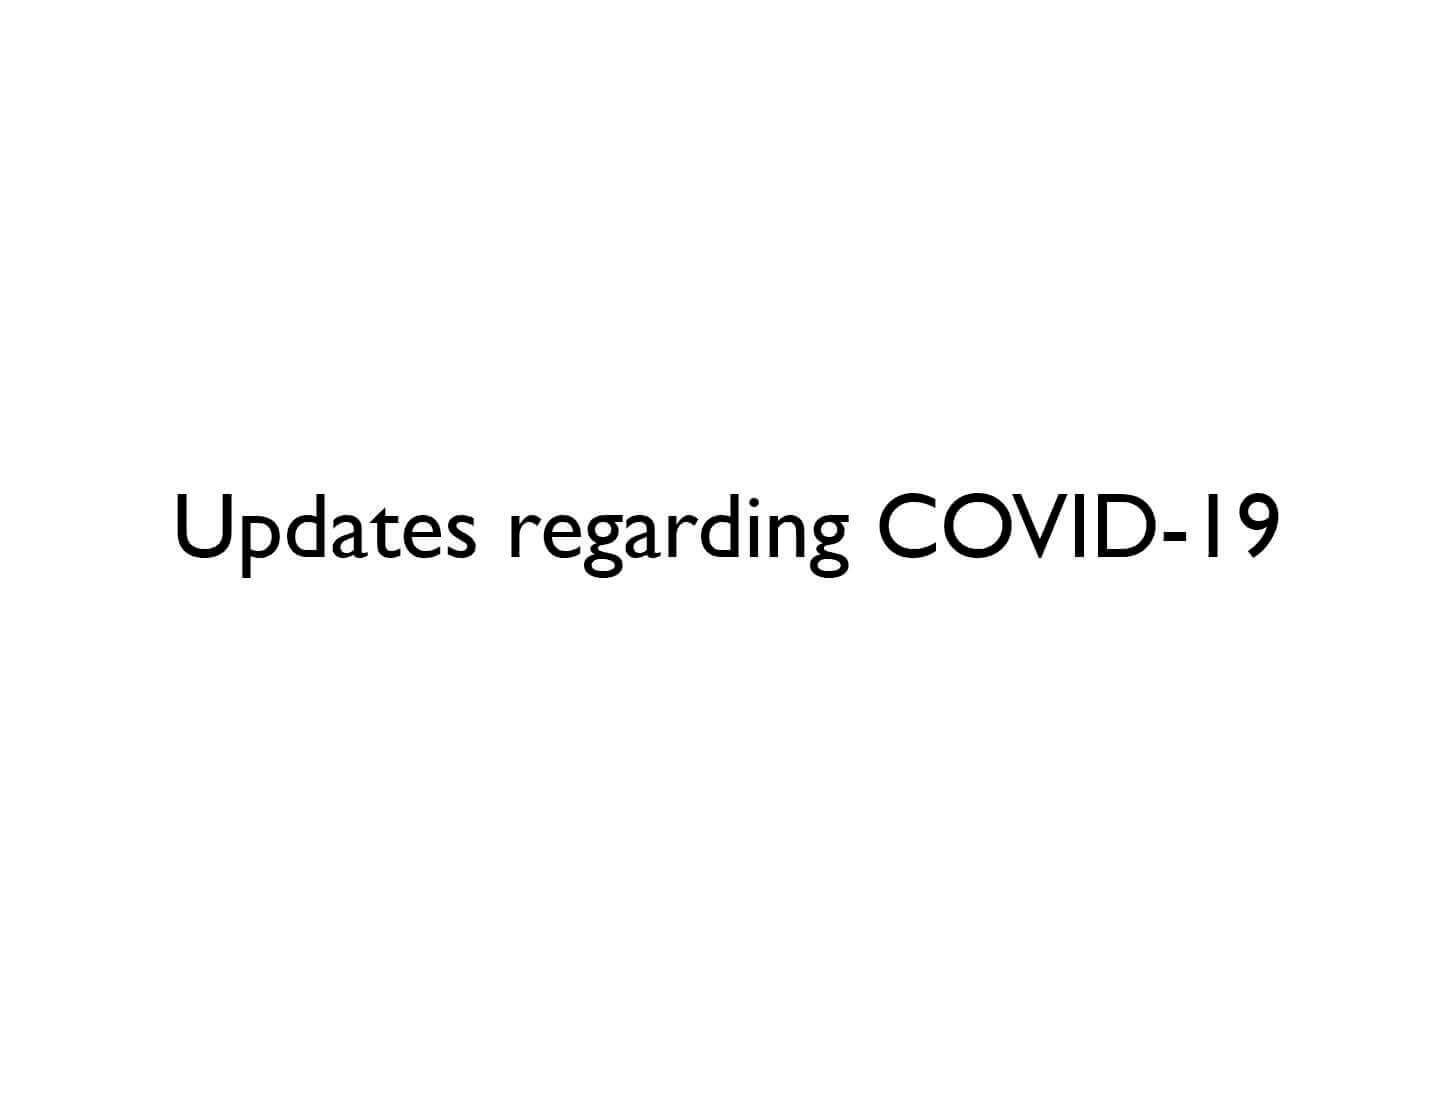 Updates from Lisson Gallery regarding COVID-19